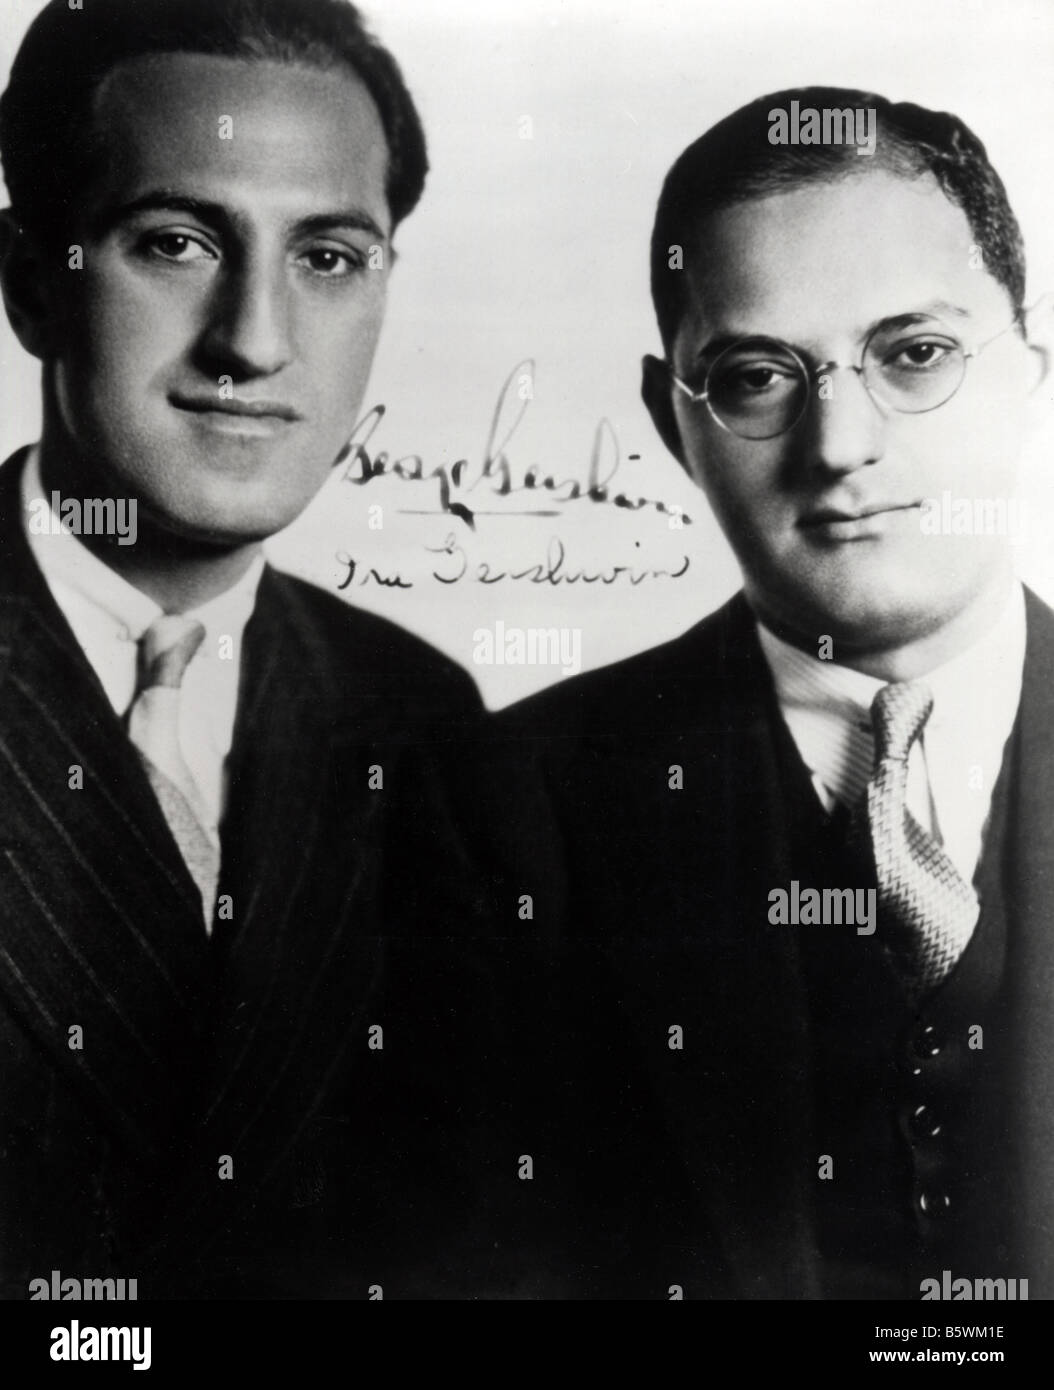 GEORGE AND IRA GERSHWIN American composers with George at left and Ira who wrote the lyrics - Stock Image